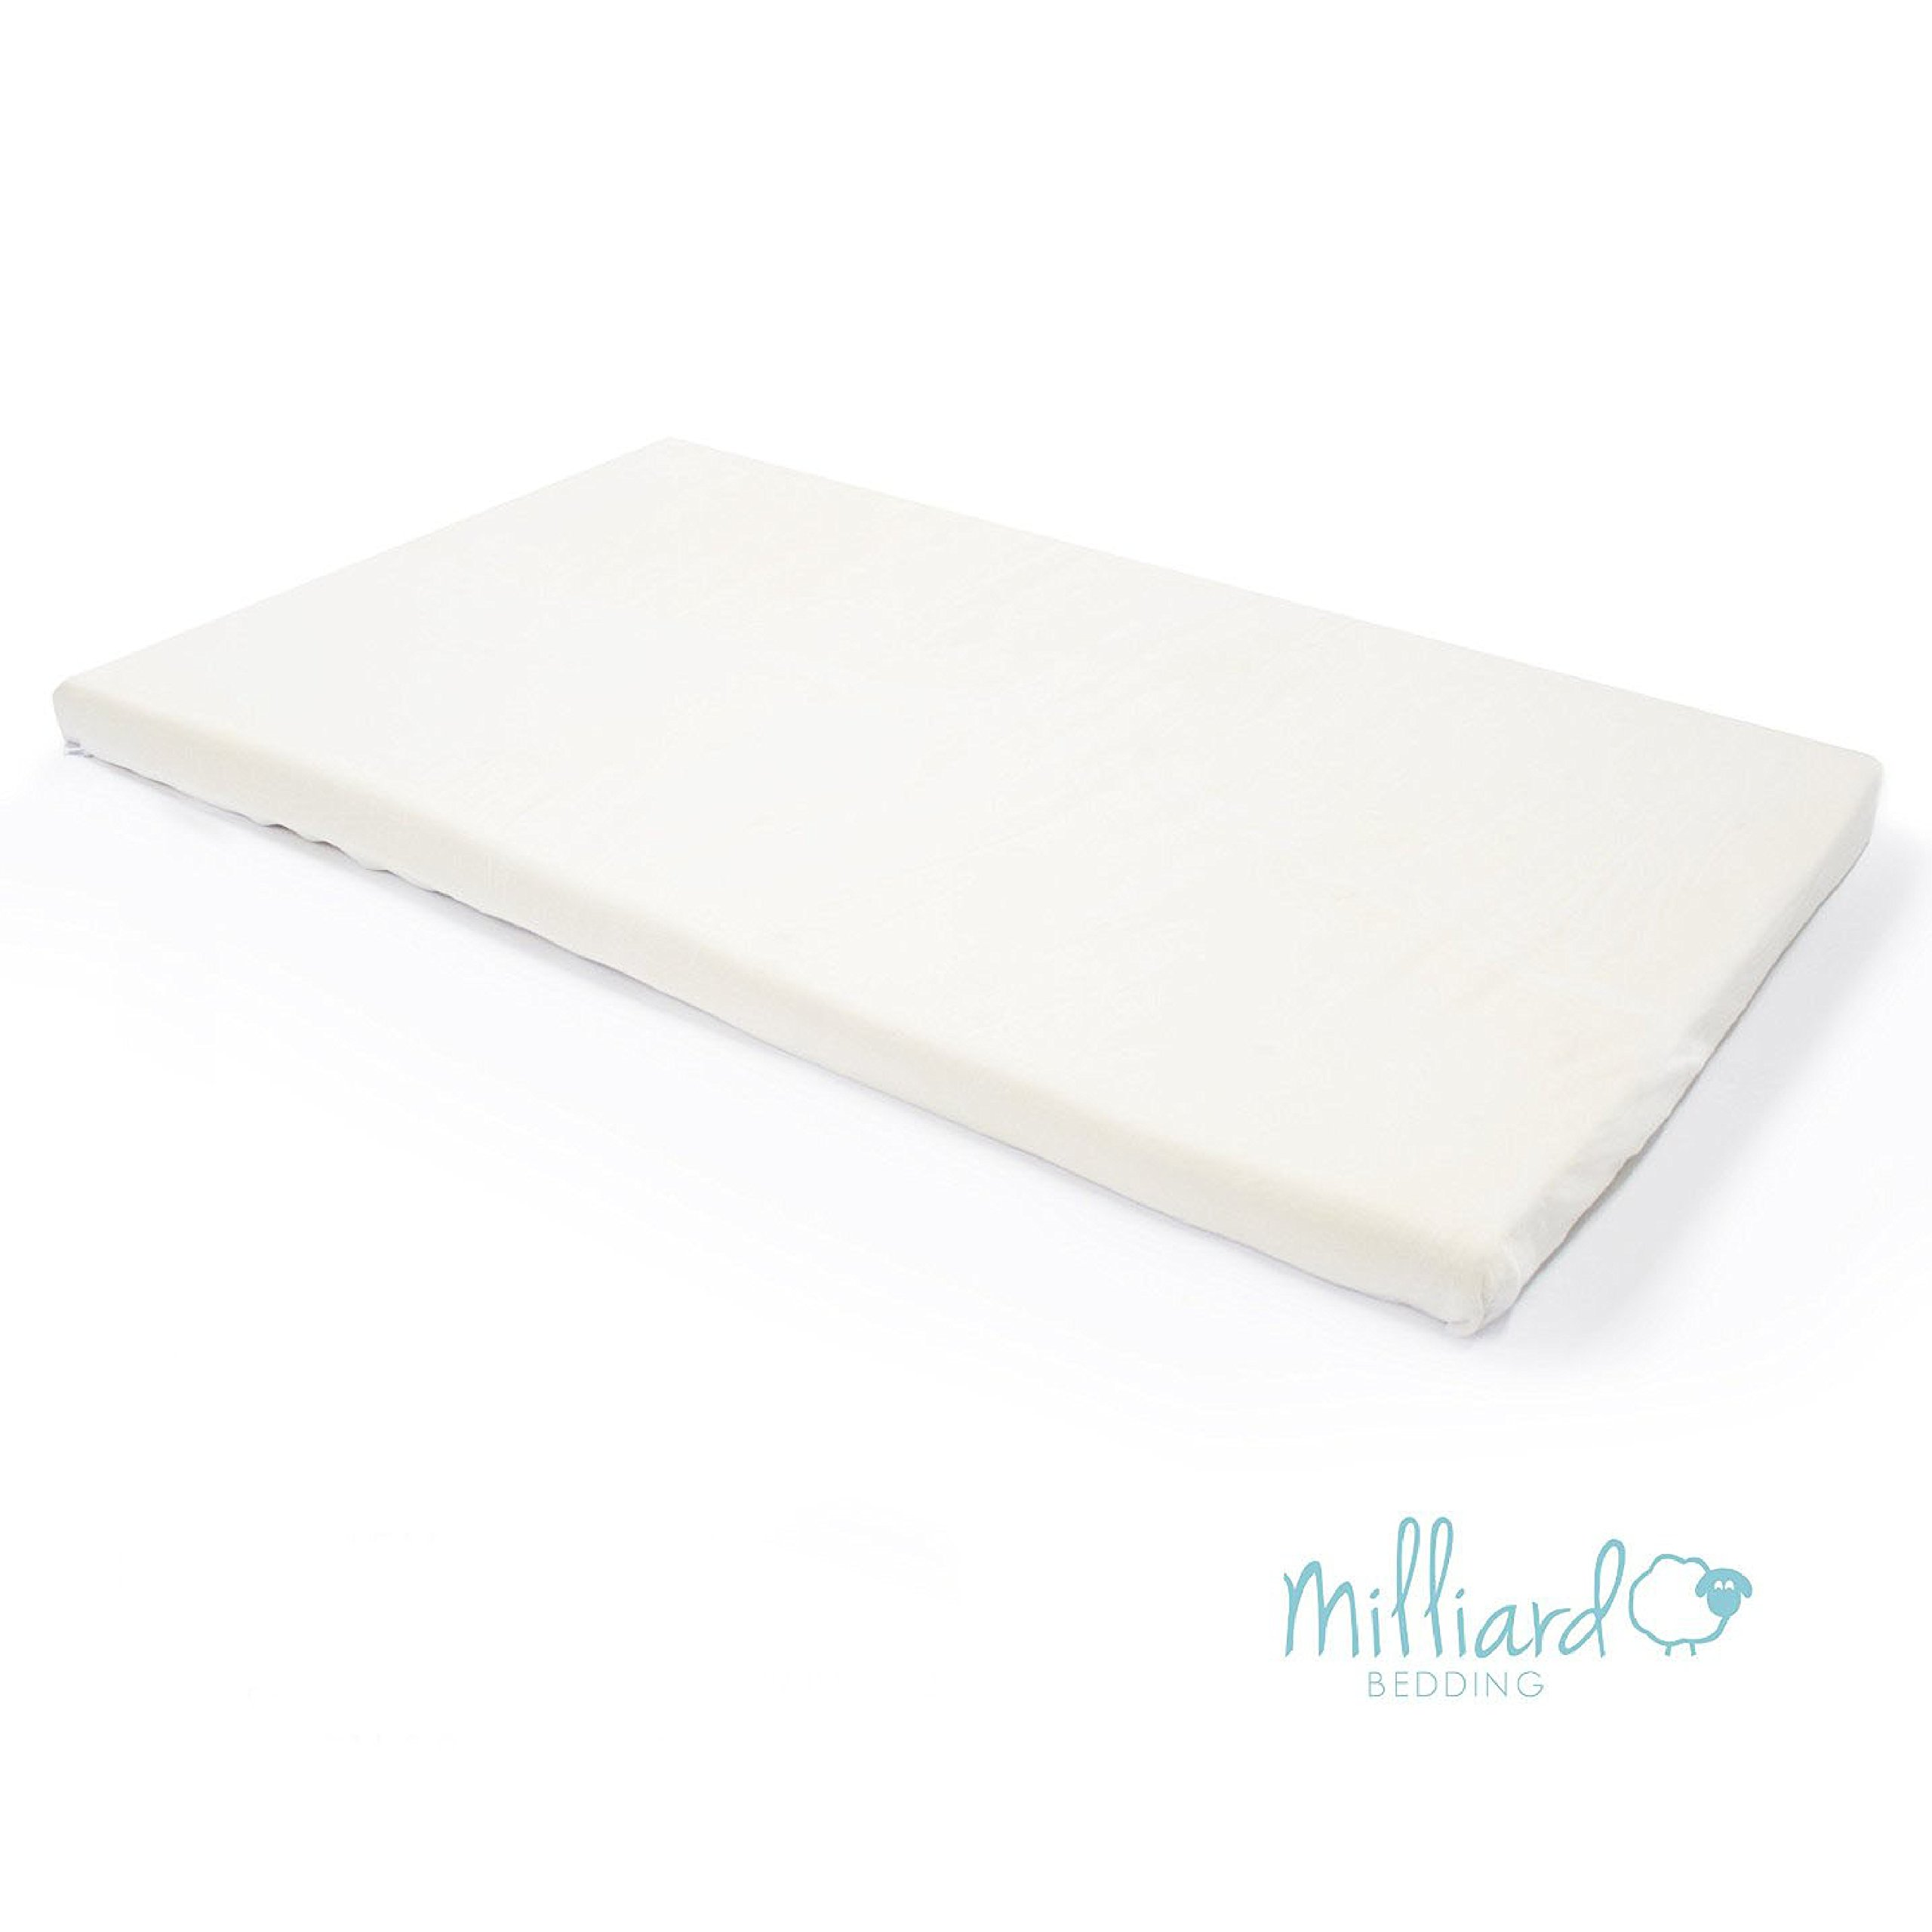 Milliard Memory Foam Crib Mattress Topper – For Standard Cribs and Toddler Beds